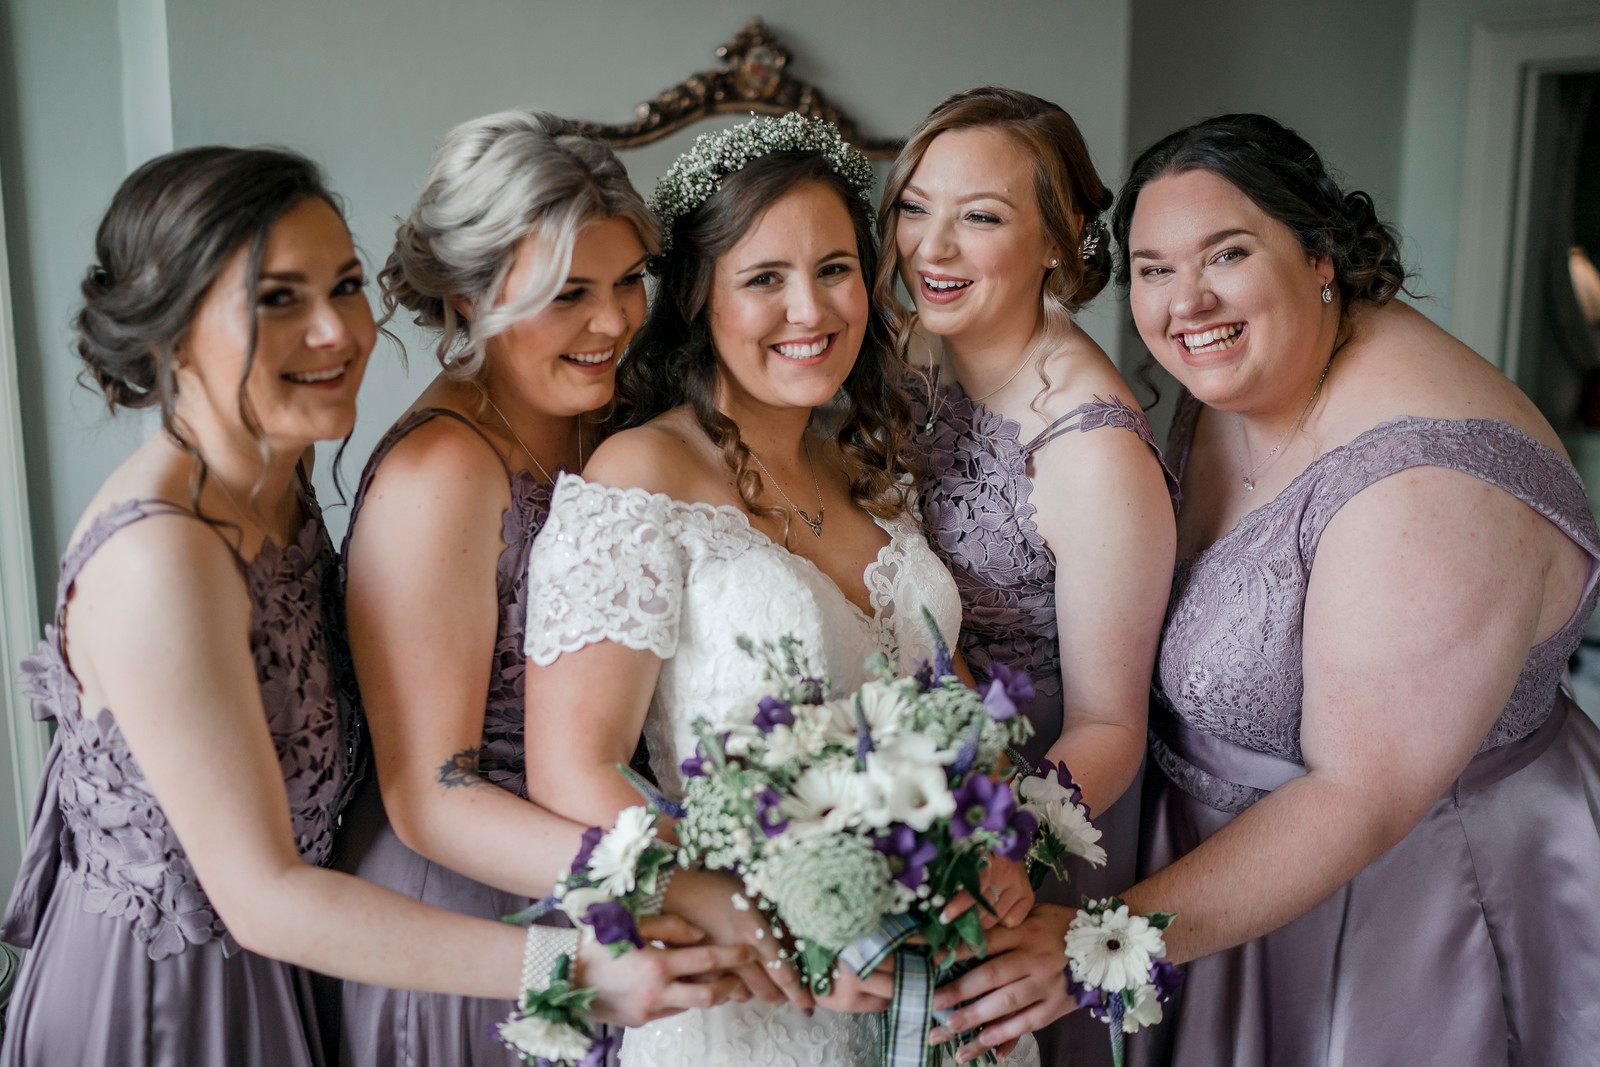 Bride and bridesmaids full of smiles - wedding photography Northumberland